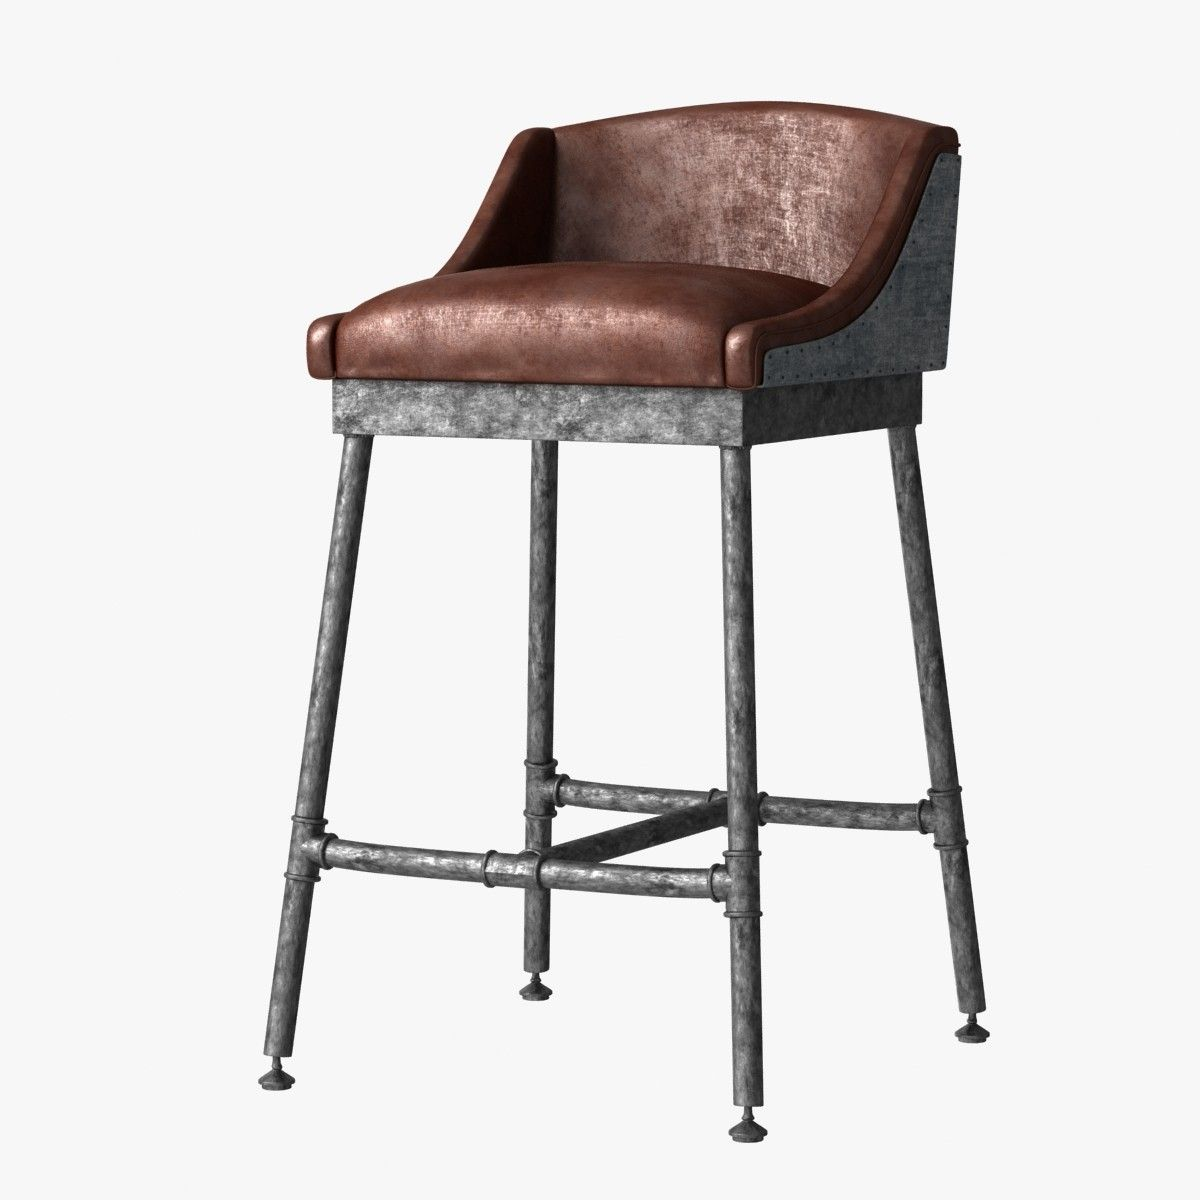 Restoration Hardware Iron Scaffold Leather Barstool Model Available On Turbo Squid The World S Leading Provider Of Digital Models For Visualization Films